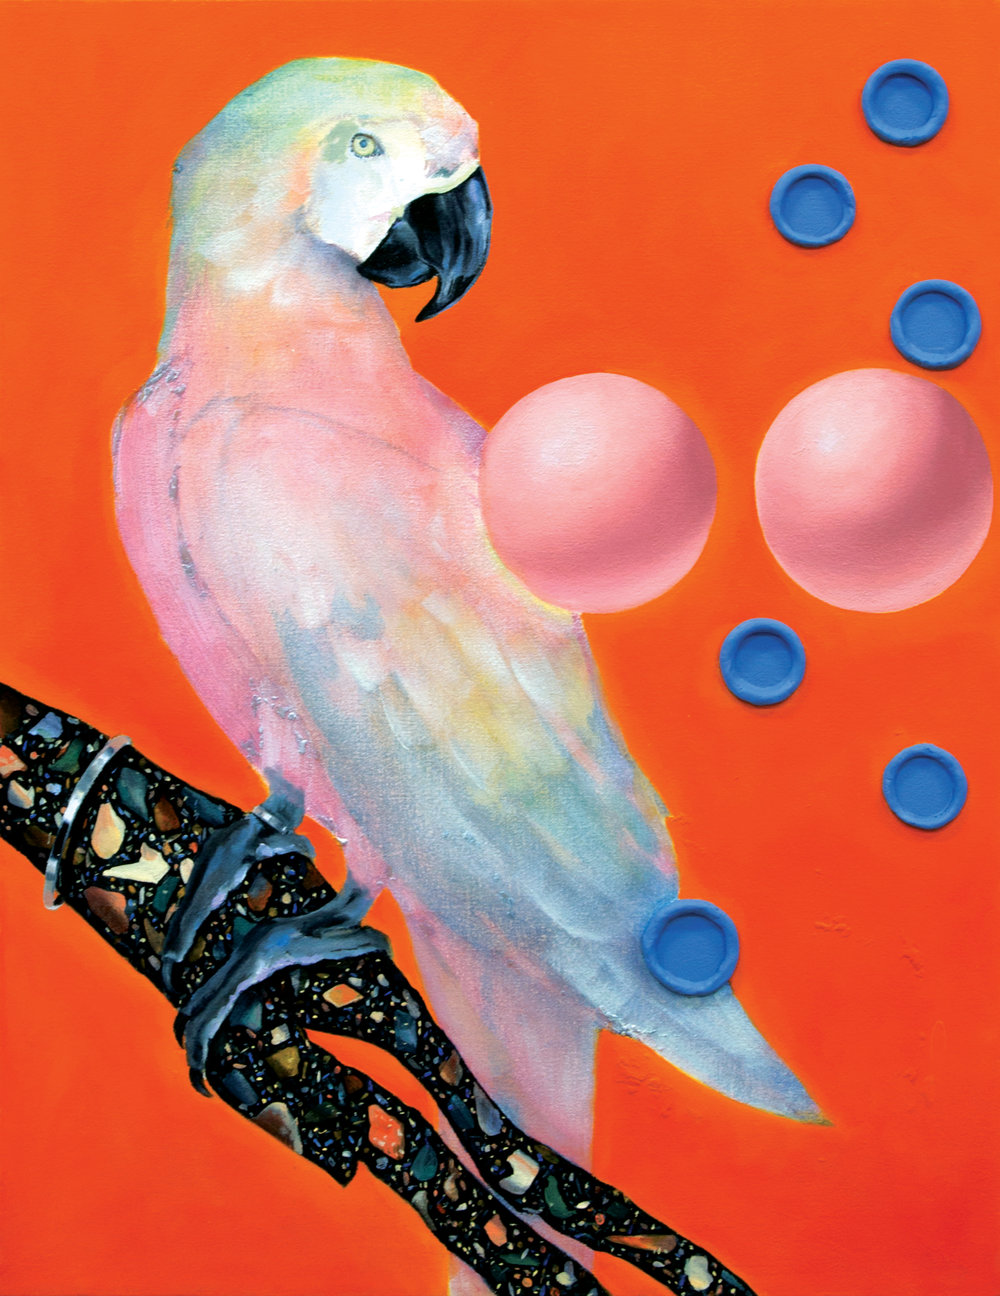 Parrotry at the Bodega  oil, Apoxie Sculpt, acrylic paint on canvas 26 x 20 in